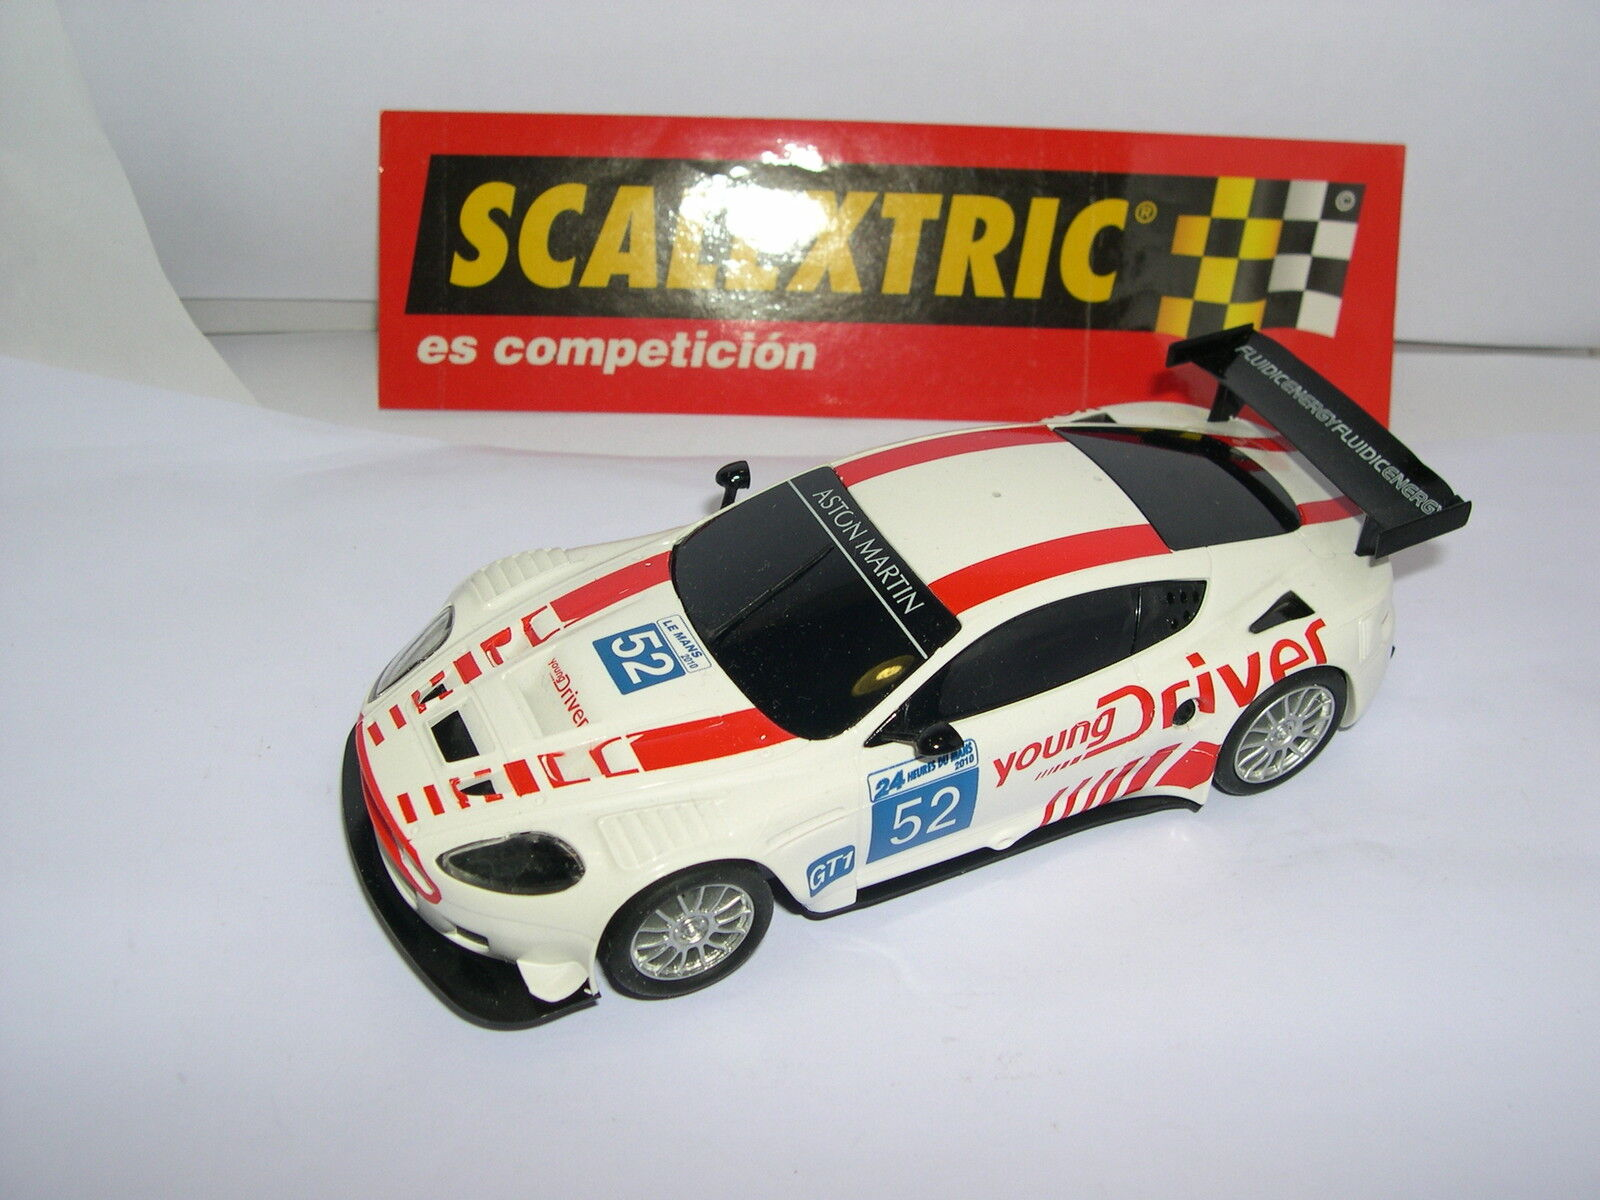 SCALEXTRIC ASTON MARTIN DBR9  52 LE MANS YOUNG DRIVER ONLY SETS MINT UNBOXED